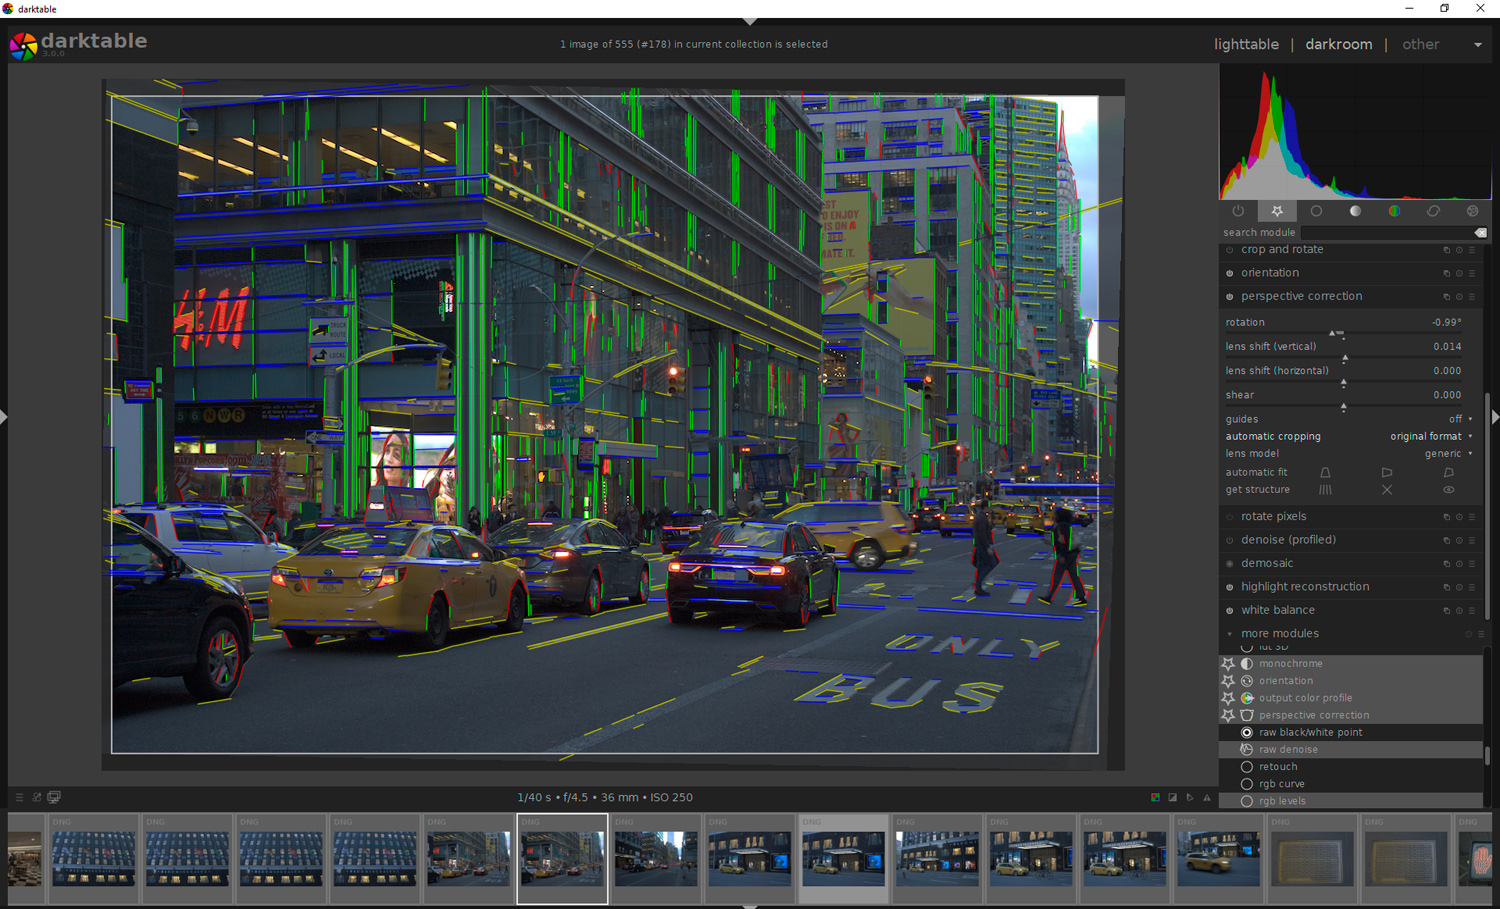 Perspective correction in Darktable - get structure.